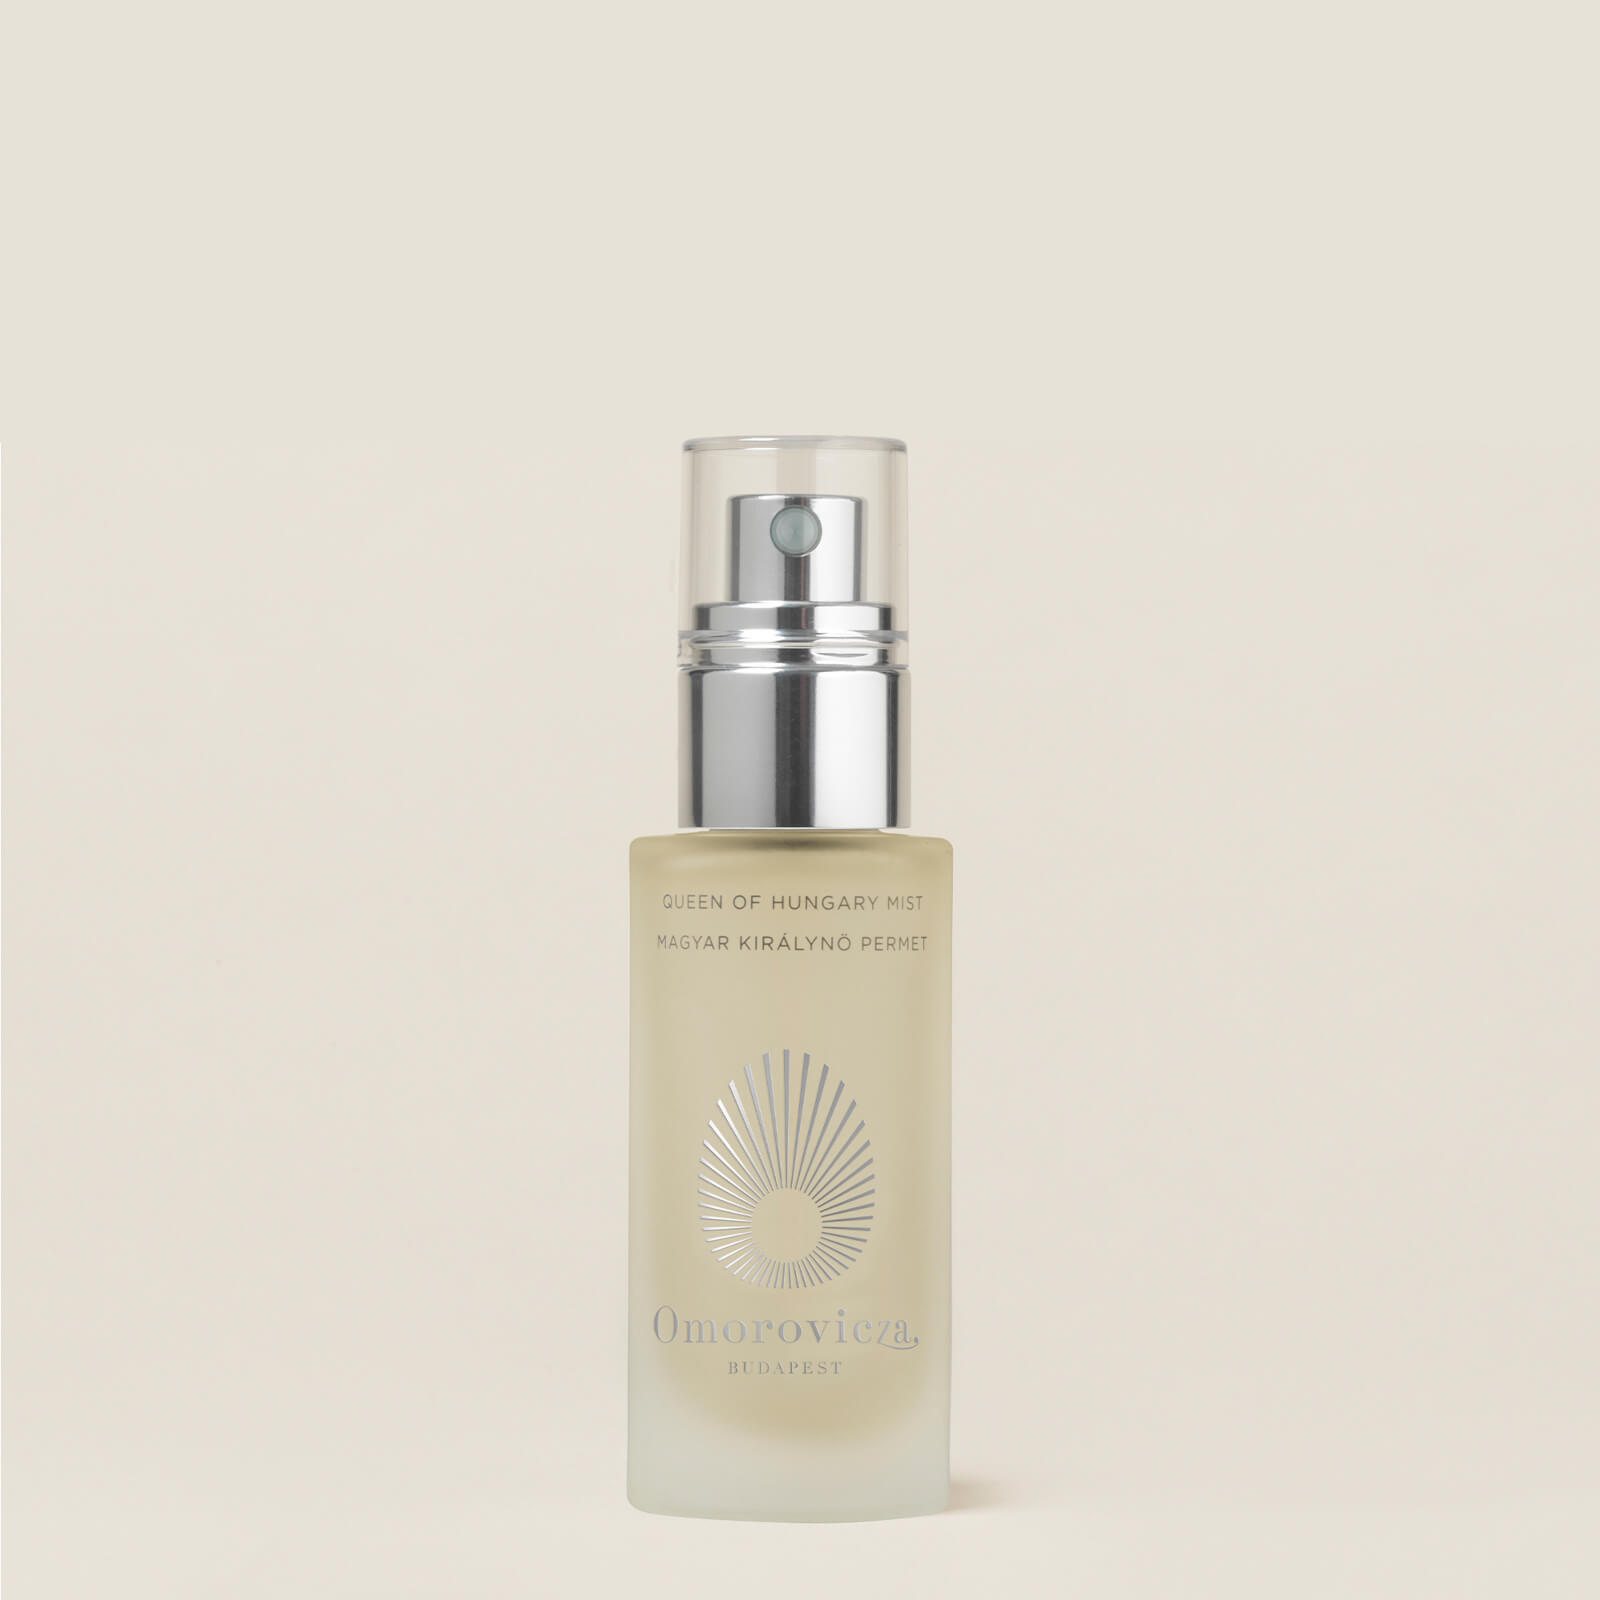 Glossy Box coupon: Omorovicza Queen of Hungary Mist 30ml